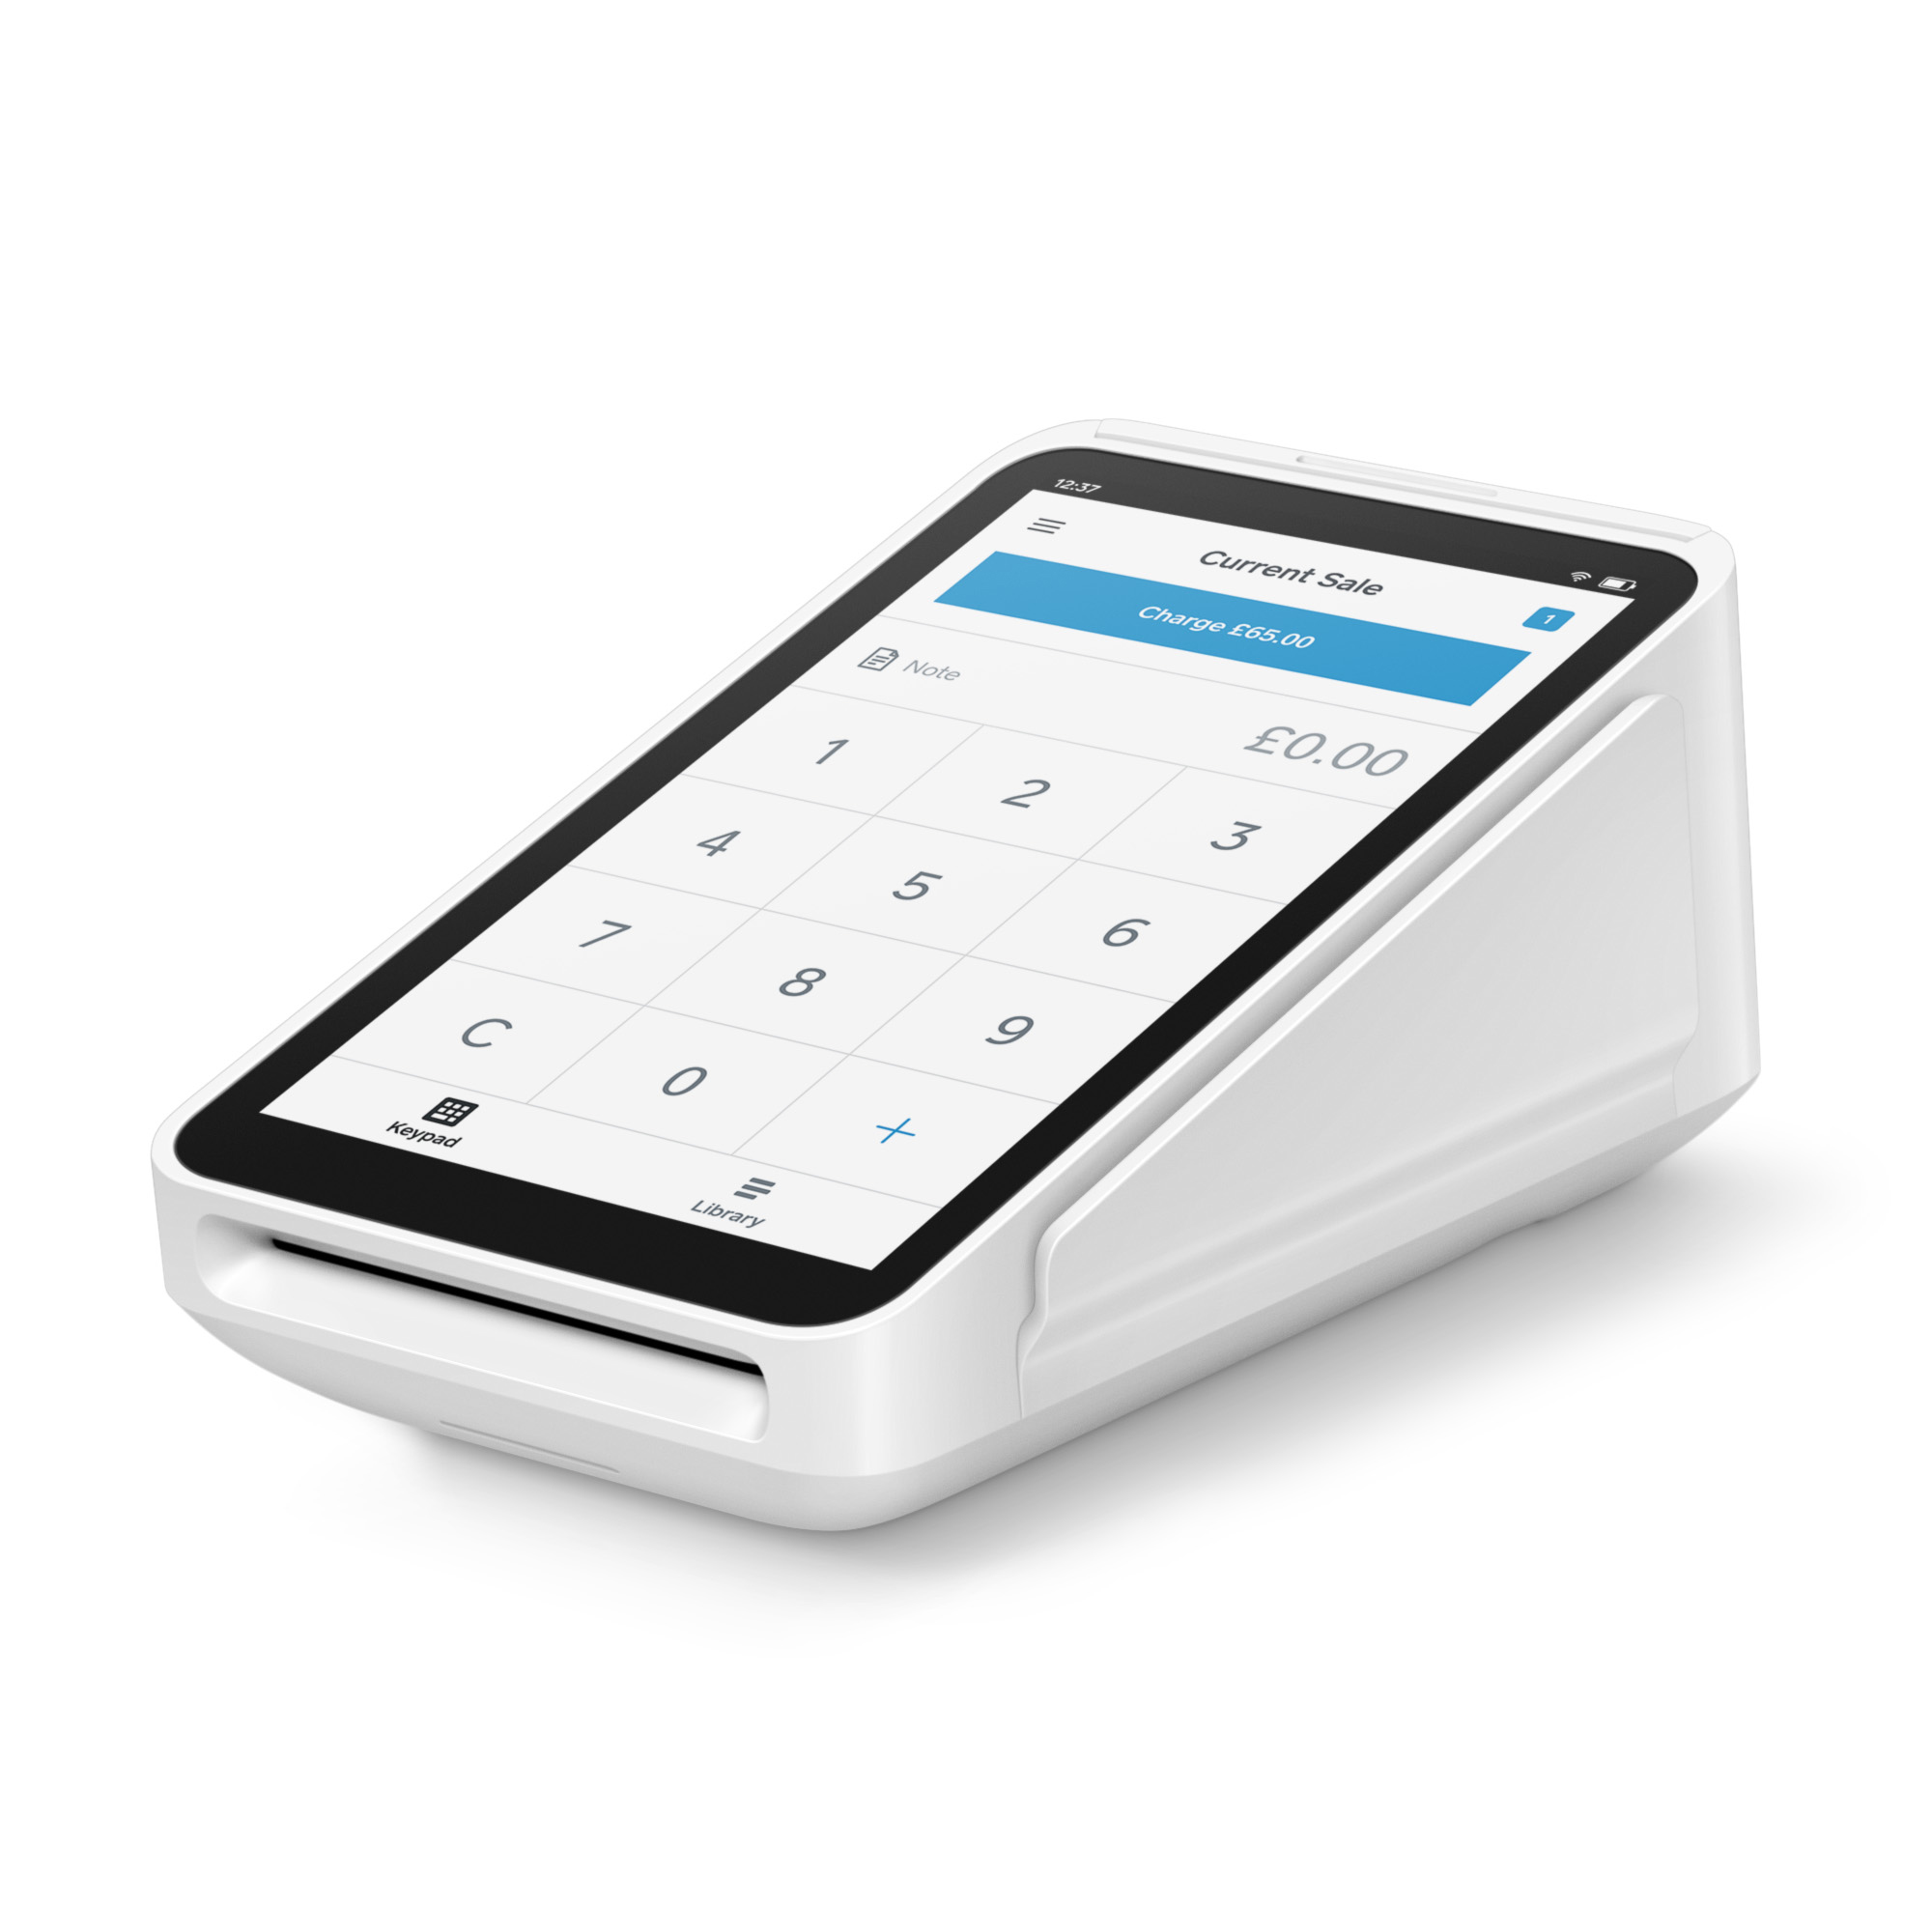 Tally Rolls Square Terminal All-in-one device Accepts Chip/PIN/Contactless/Apple Pay/Google Pay Ref A-SKU-0568